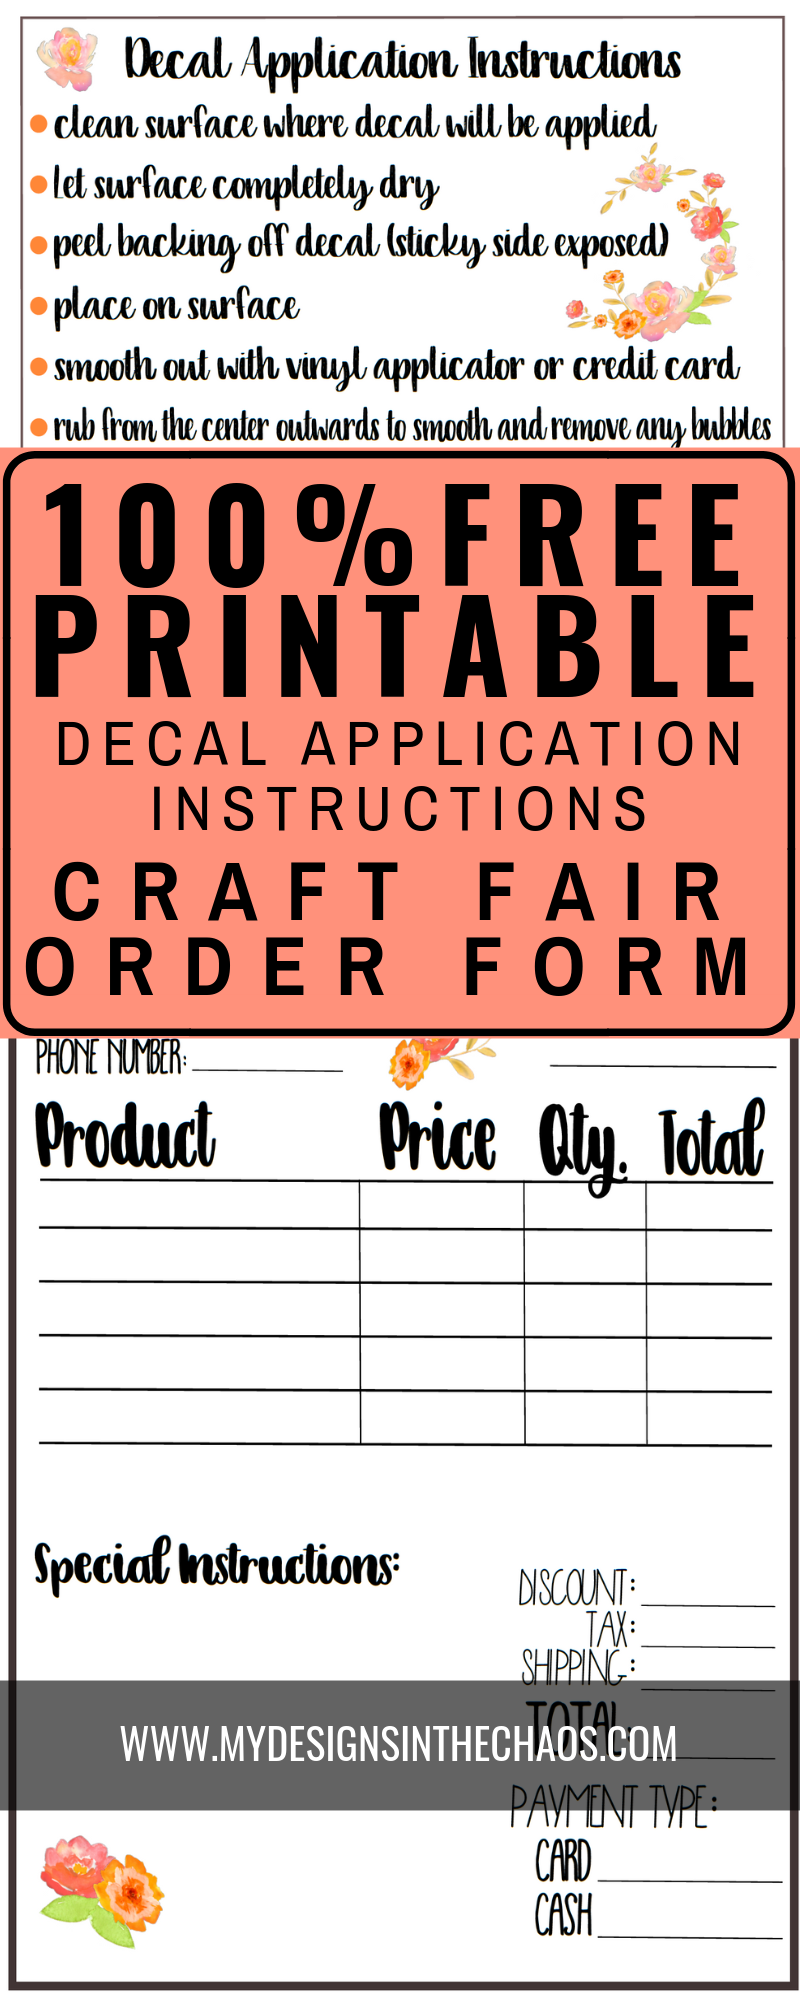 Decal application instructions printable my designs in the chaos check out 5 simple tips to be super successful when selling your vinyl decals from your